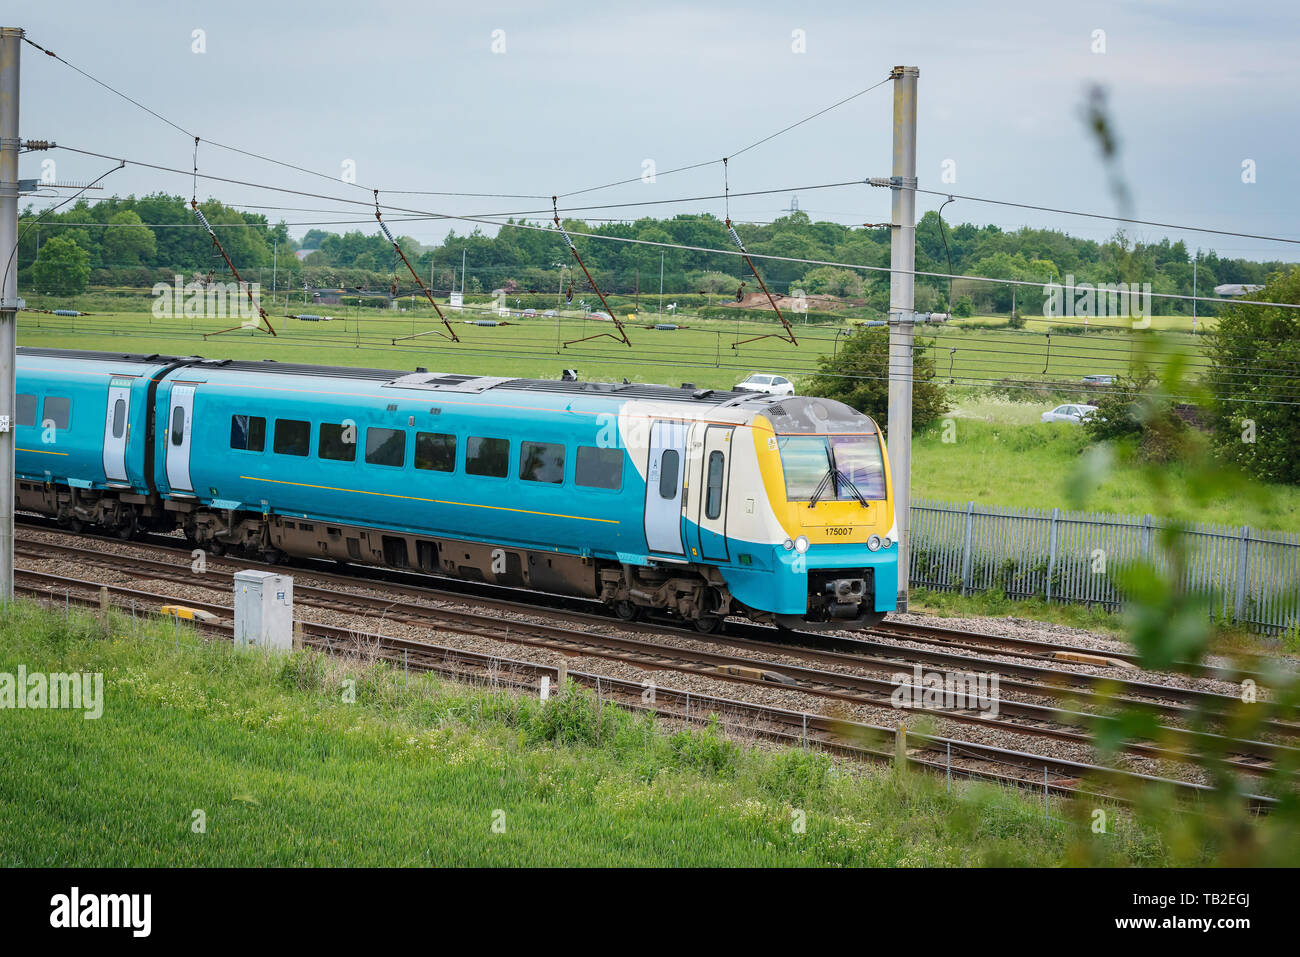 Class 175 Arriva DMU train at Winwick. - Stock Image